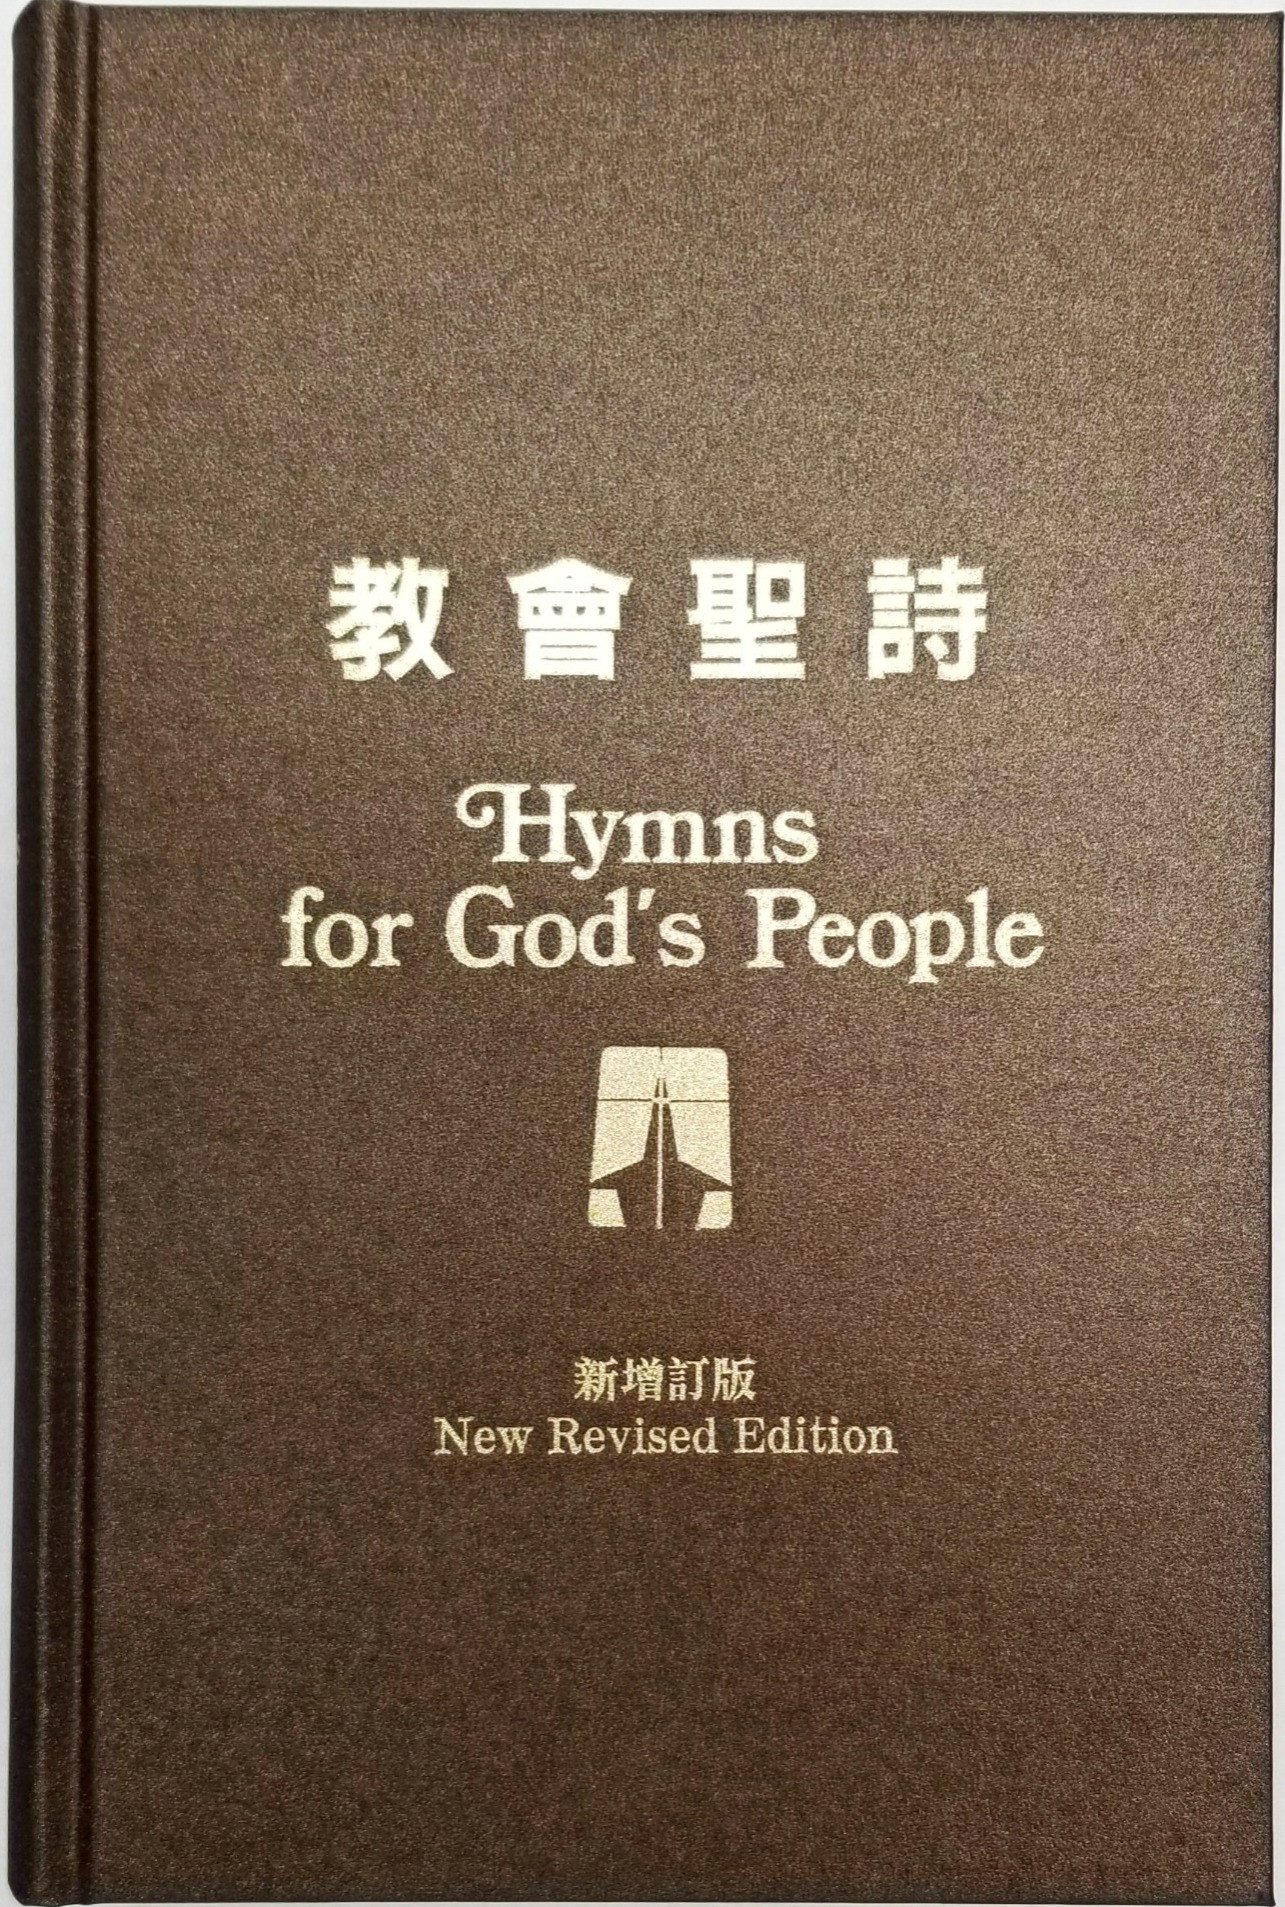 Hymns for God's People - New Edition